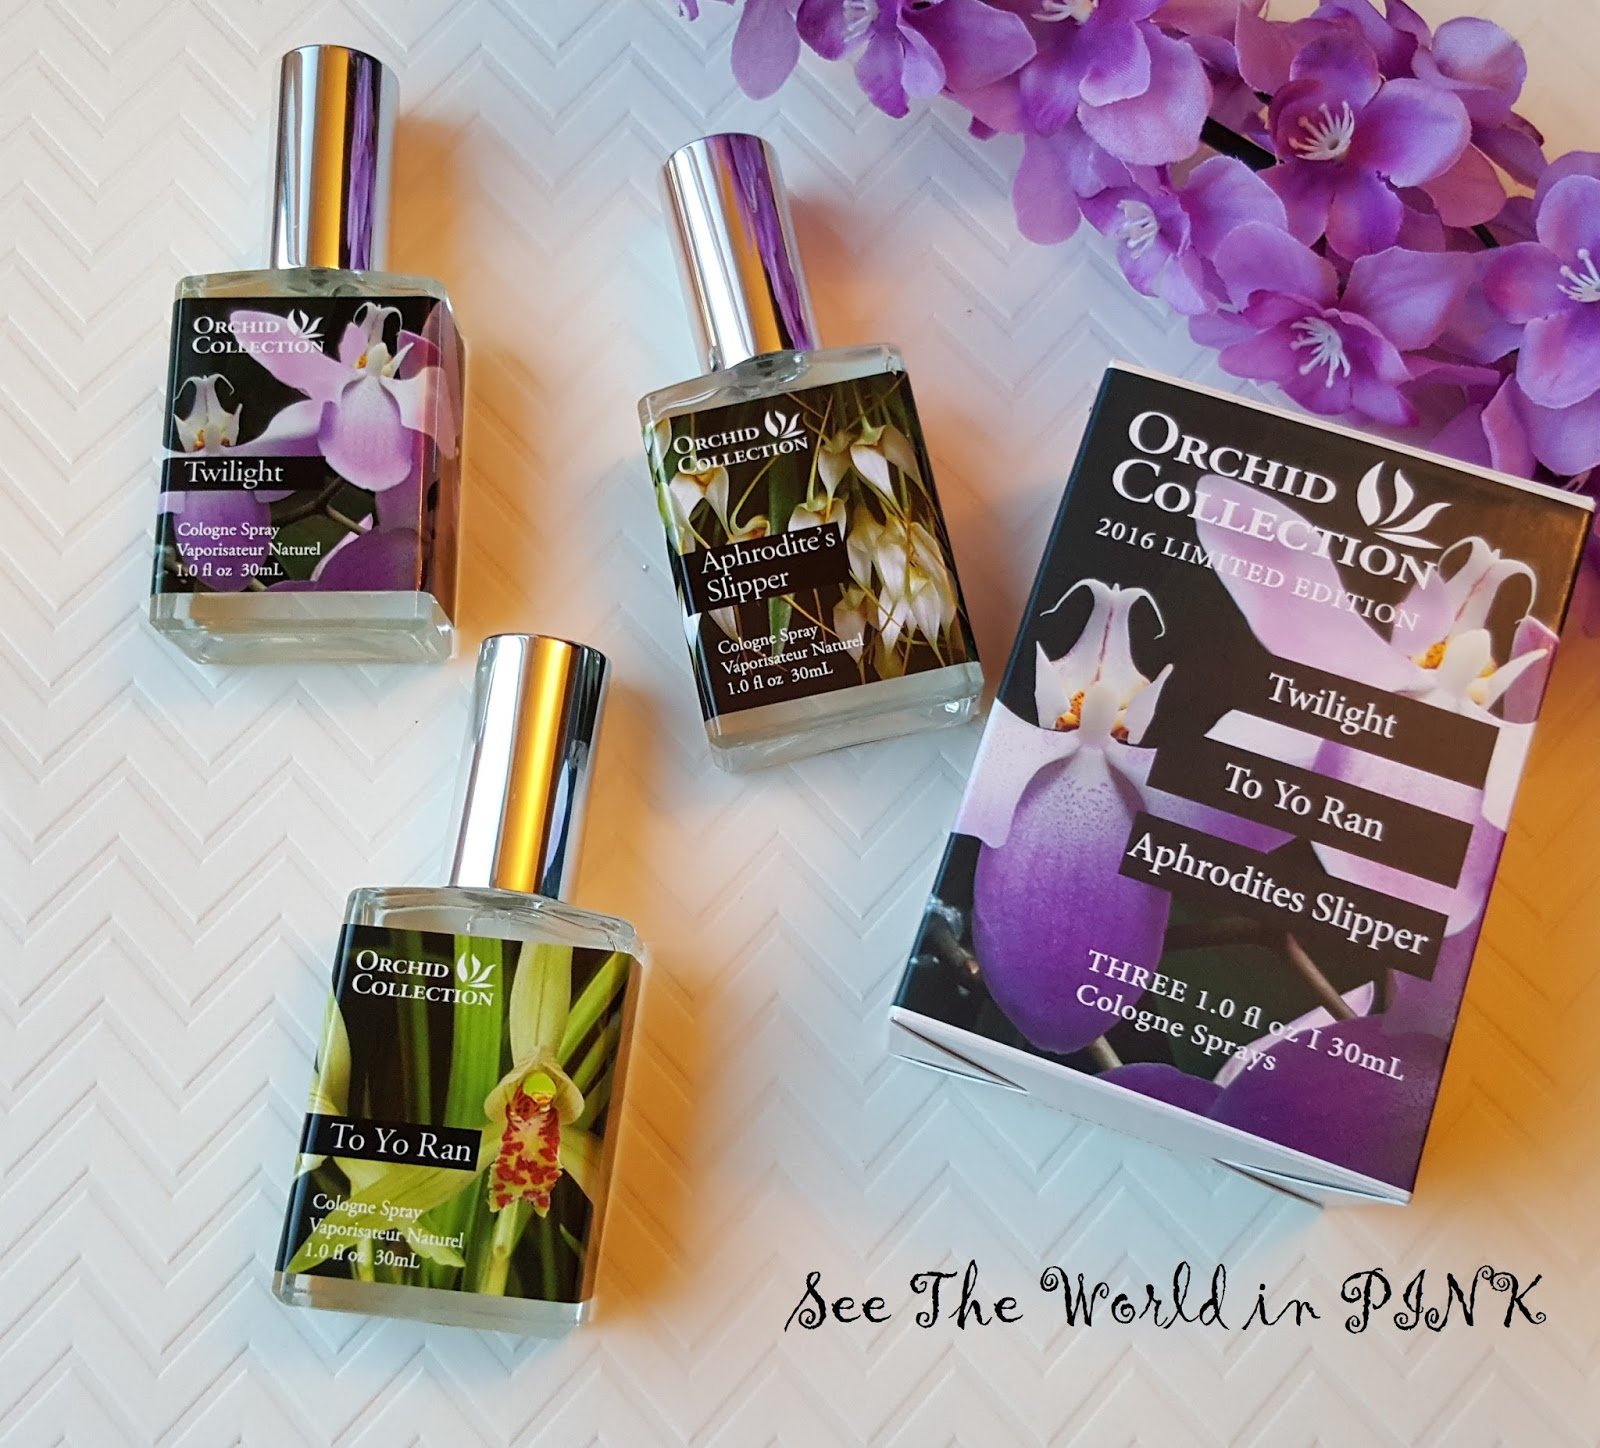 demeter orchid fragrance collection mother's day